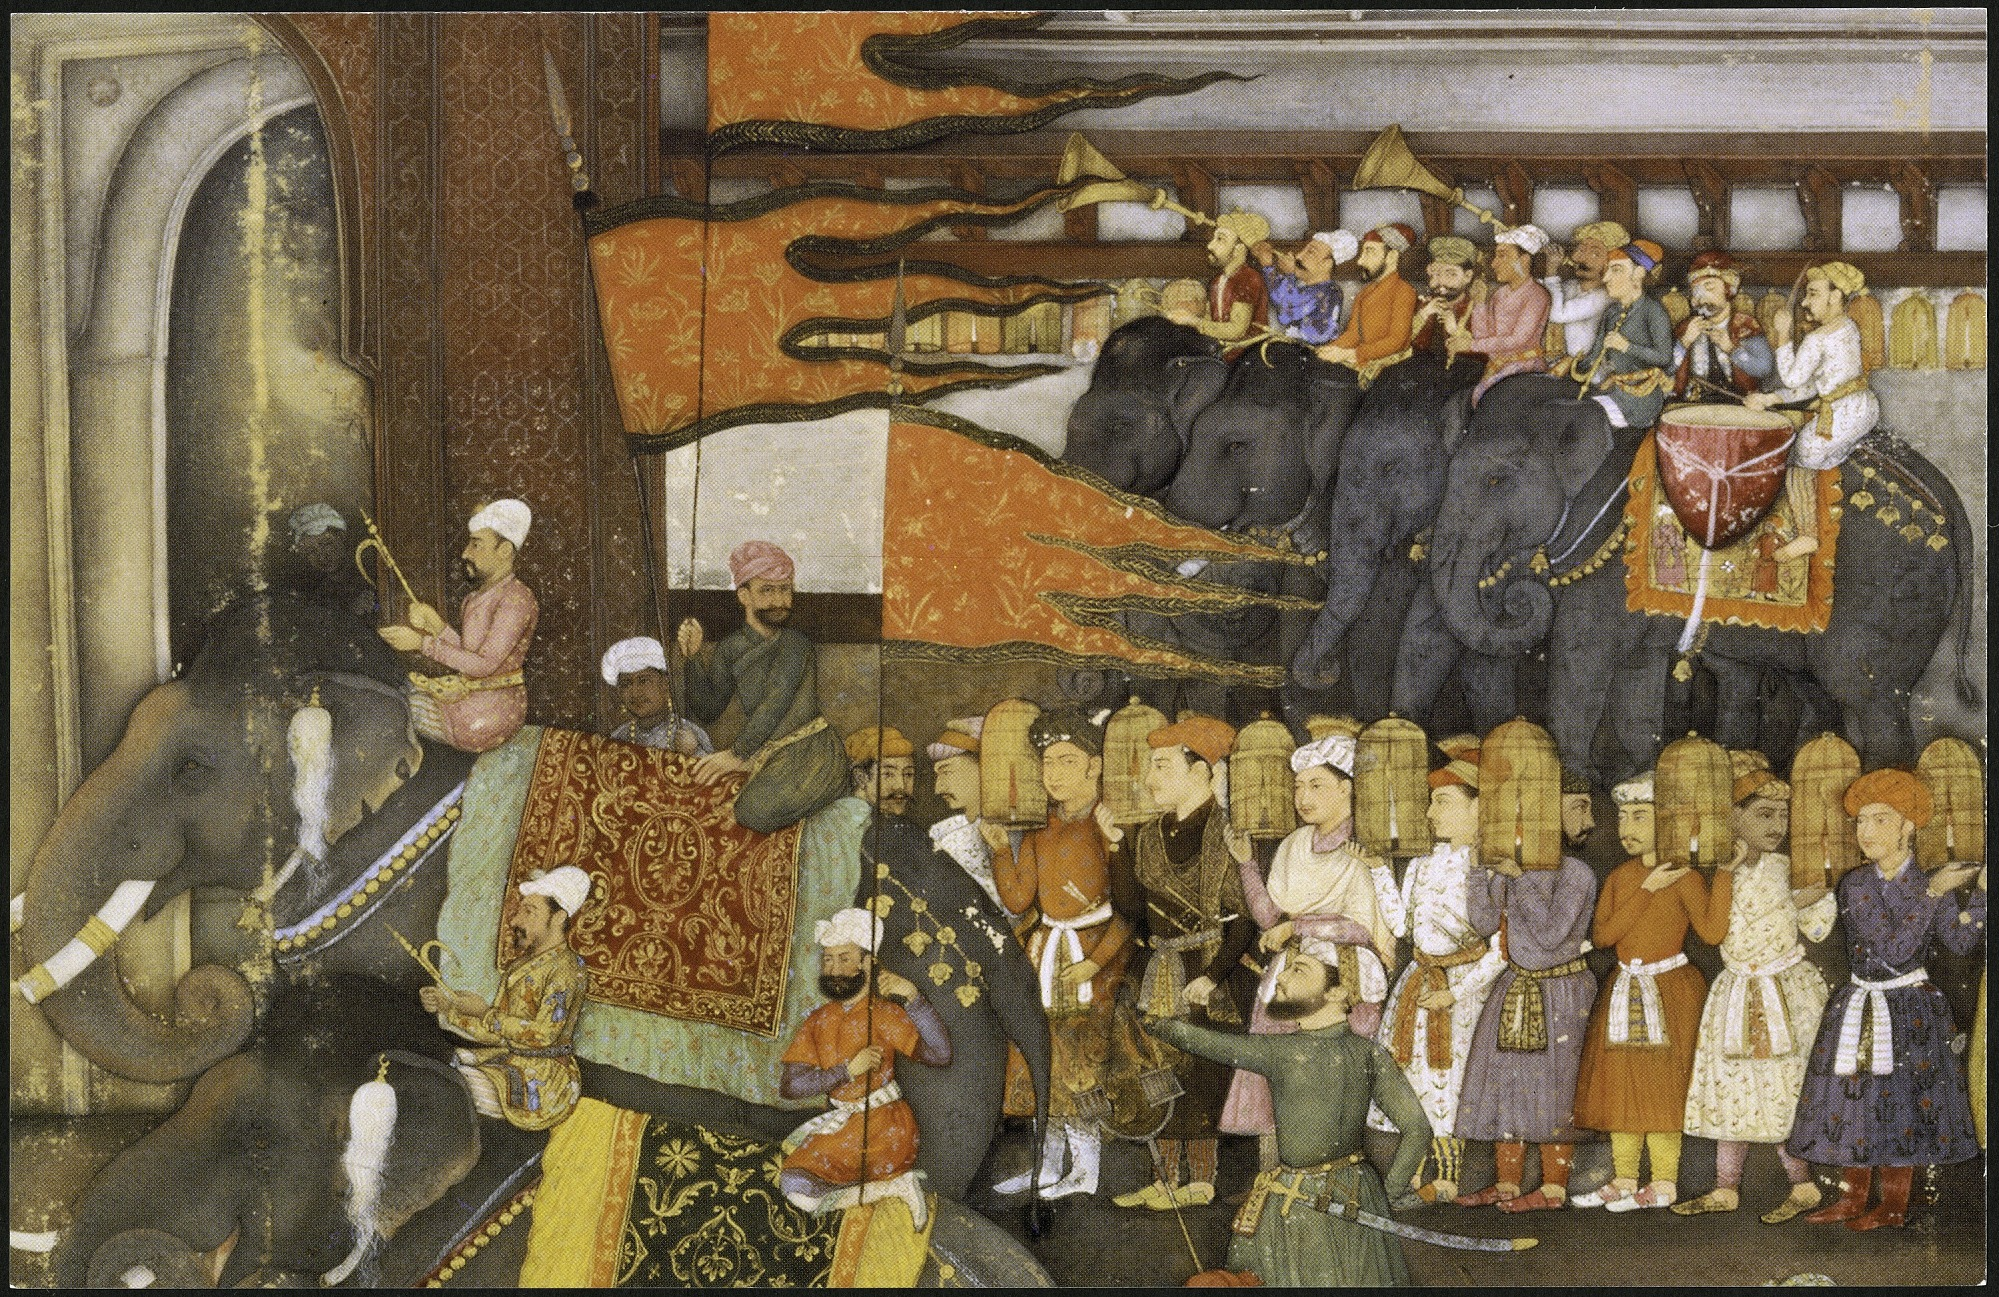 "Postcard of ""The Wedding Procession of Prince Dara-Shikoh"", by Unknown, 1997, Smithsonian Archives - History Div, SIA2013-07761 (front) and SIA2013-07762 (back)."